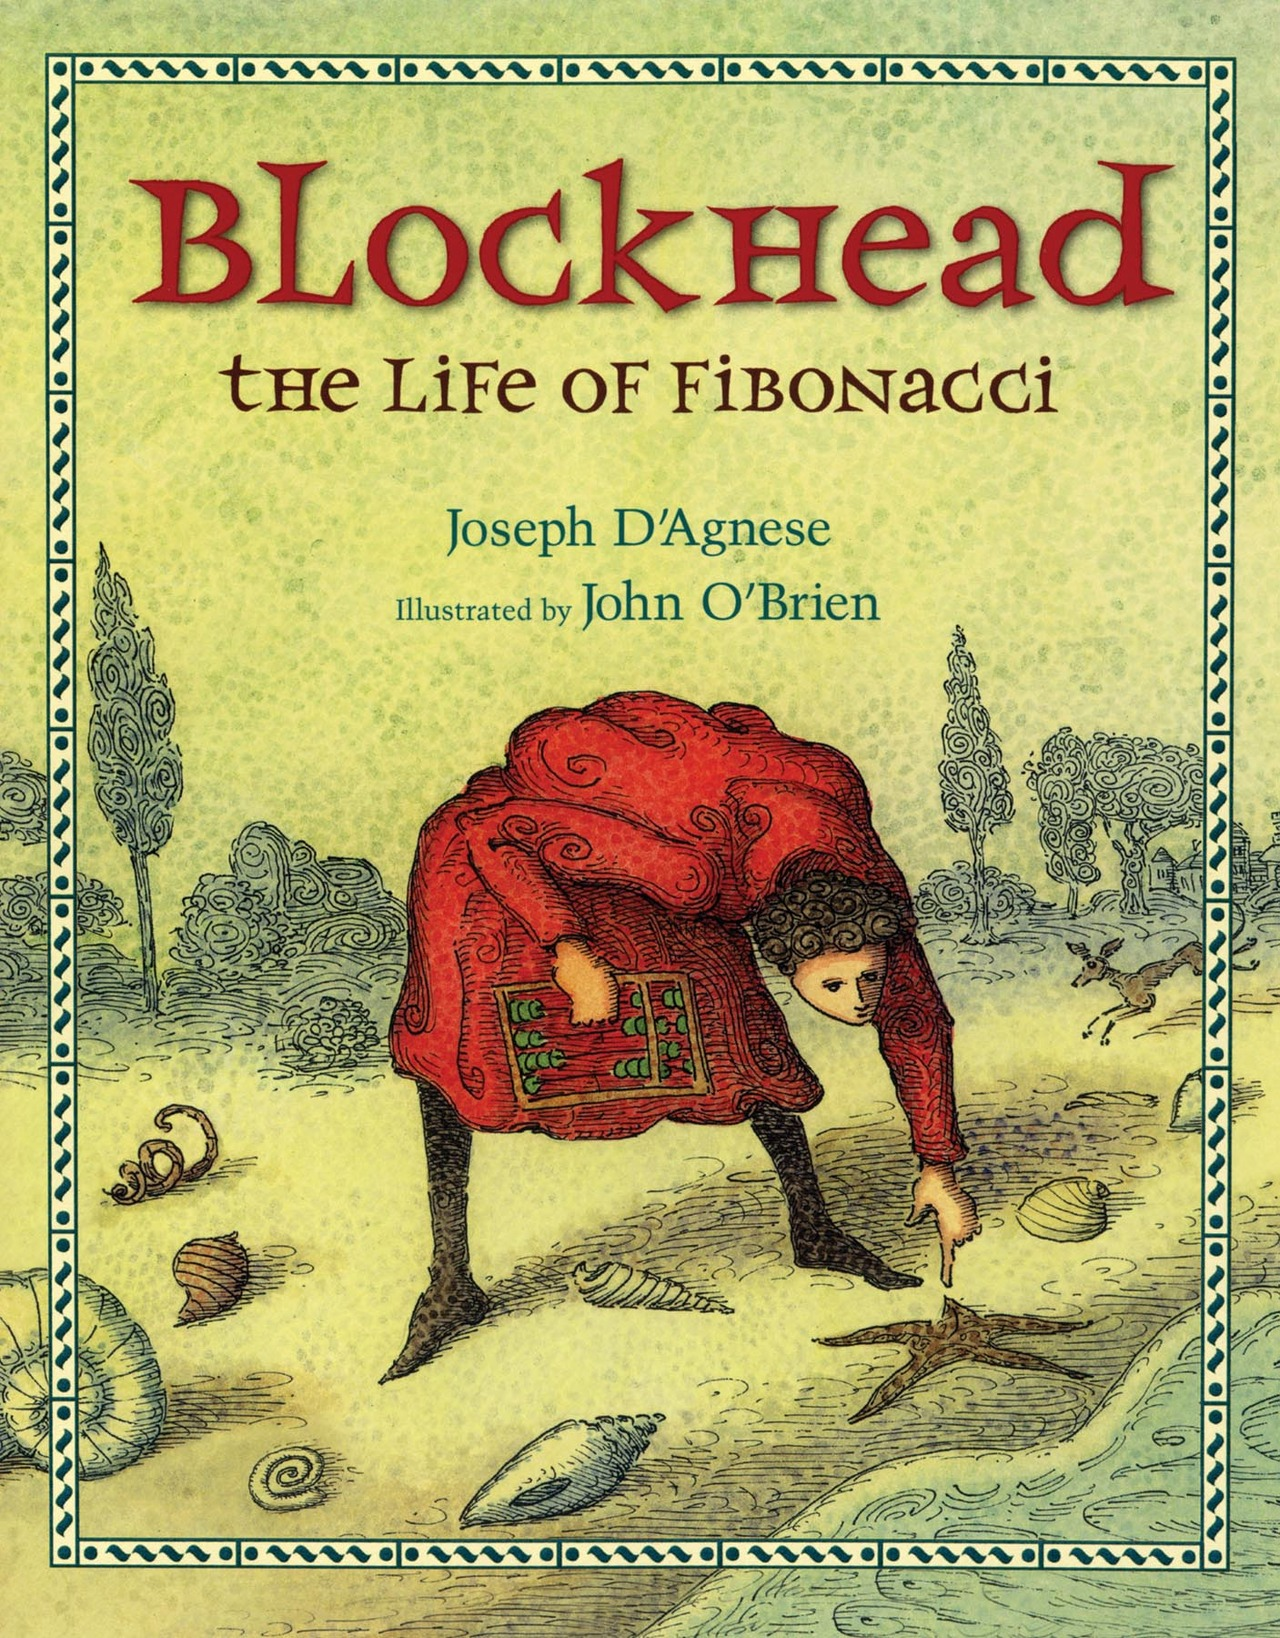 "BLOCKHEAD: THE LIFE OF FIBONACCI is a charming picture book that is a fictionalized story of the real-life mathematician Leonardo of Pisa. He journeyed to Northern Africa to work in his father's business more than 800 years ago. He was surprised to learn that the citizens of his new home didn't use Roman numerals. He traveled the world of the Mediterranean learning all he could about the strange new Hindu-Arabic numerals. Then he wrote books to teach western Europeans how to calculate with them. The man we now call Fibonacci is largely responsible for converting Europe from I-II-III to 1-2-3. But he's mostly remembered for a series of numbers known as the Fibonacci Sequence, which describes how many objects thrive and flourish in nature. PRAISE ""…the clearest explanation to date for younger readers  of the numerical sequence that is found throughout nature and still bears his name."" —BOOKLIST ""Charming and accessible…""—NEW YORK TIMES BOOK REVIEW * ""The lively text includes touches of humor; Emperor Frederick called him 'one smart cookie.' O'Brien's signature illustrations textured with thin lines re-create a medieval setting."" —KIRKUS REVIEWS, starred review   ""Math lover or not, readers should succumb to the charms of this highly entertaining biography of medieval mathematician Leonardo Fibonacci."" —PUBLISHERS WEEKLY BUY Hardcover: Indiebound  Amazon  B&N  Powell's Teacher Suppliers: Educators Outlet, Reading Warehouse, First Book Autographed: Malaprop's  Spellbound"